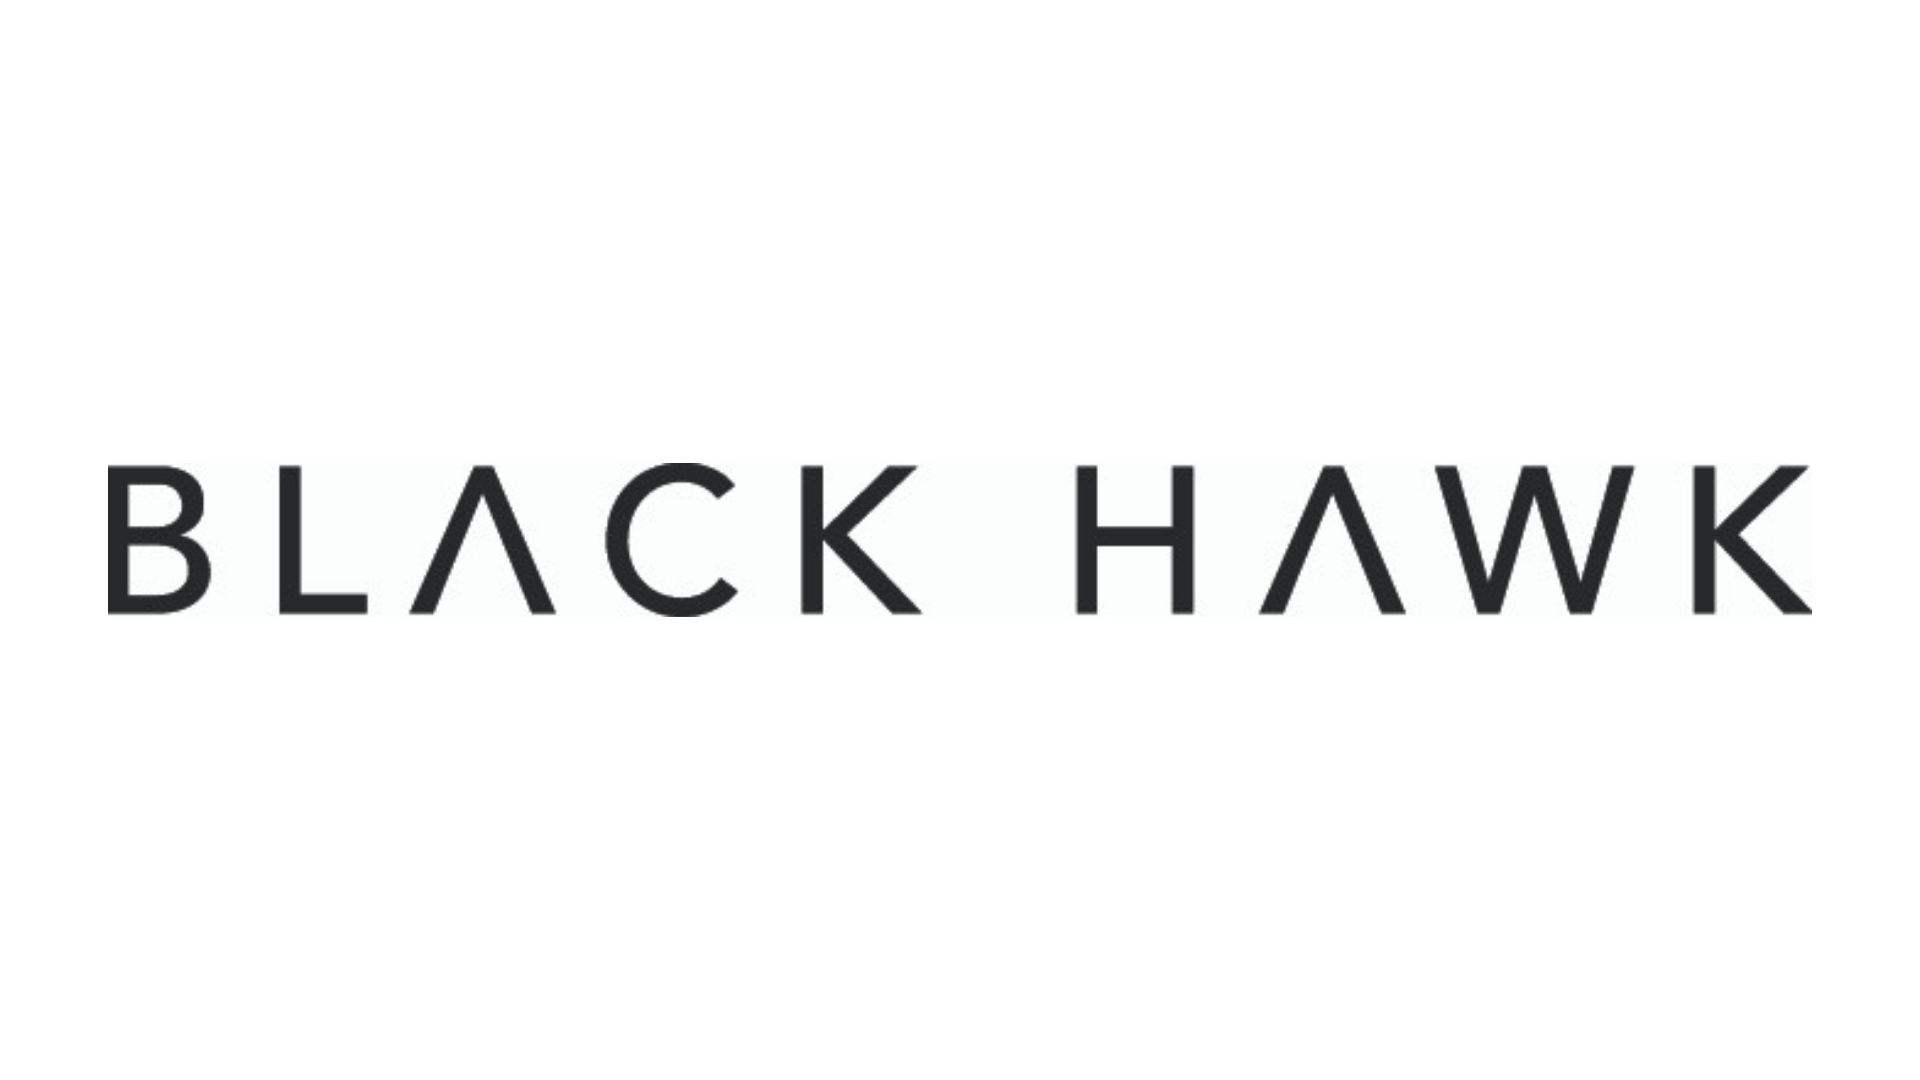 black hawk digital - Location: Toronto, OntarioPartnerships: The Cannabis ComplexBlack Hawk is a creative content agency that works for Fortune 500 companies, global organizations like The United Nations, as well as media giants like VICE & the BBC. They are directors, producers and strategists who know how to build strong narratives.blackhawkdigital.co